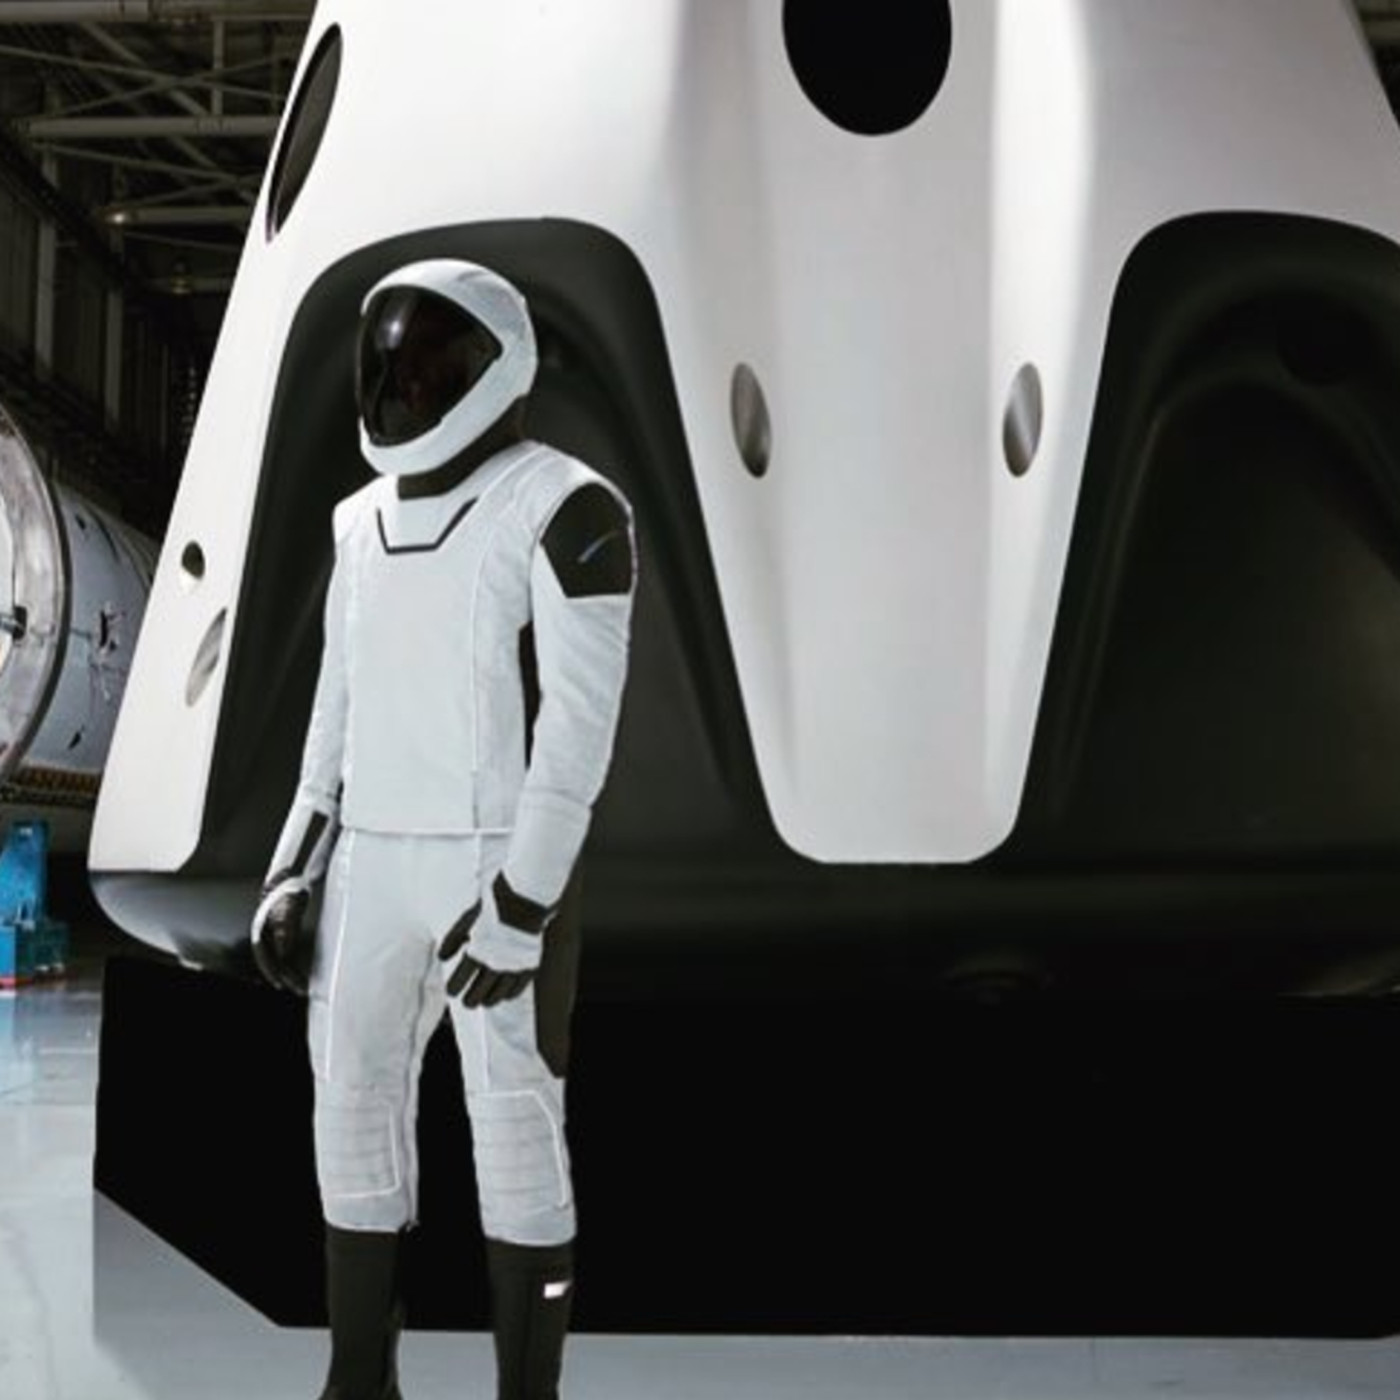 Elon Musk shares another photo of SpaceX's future space suits - The Verge